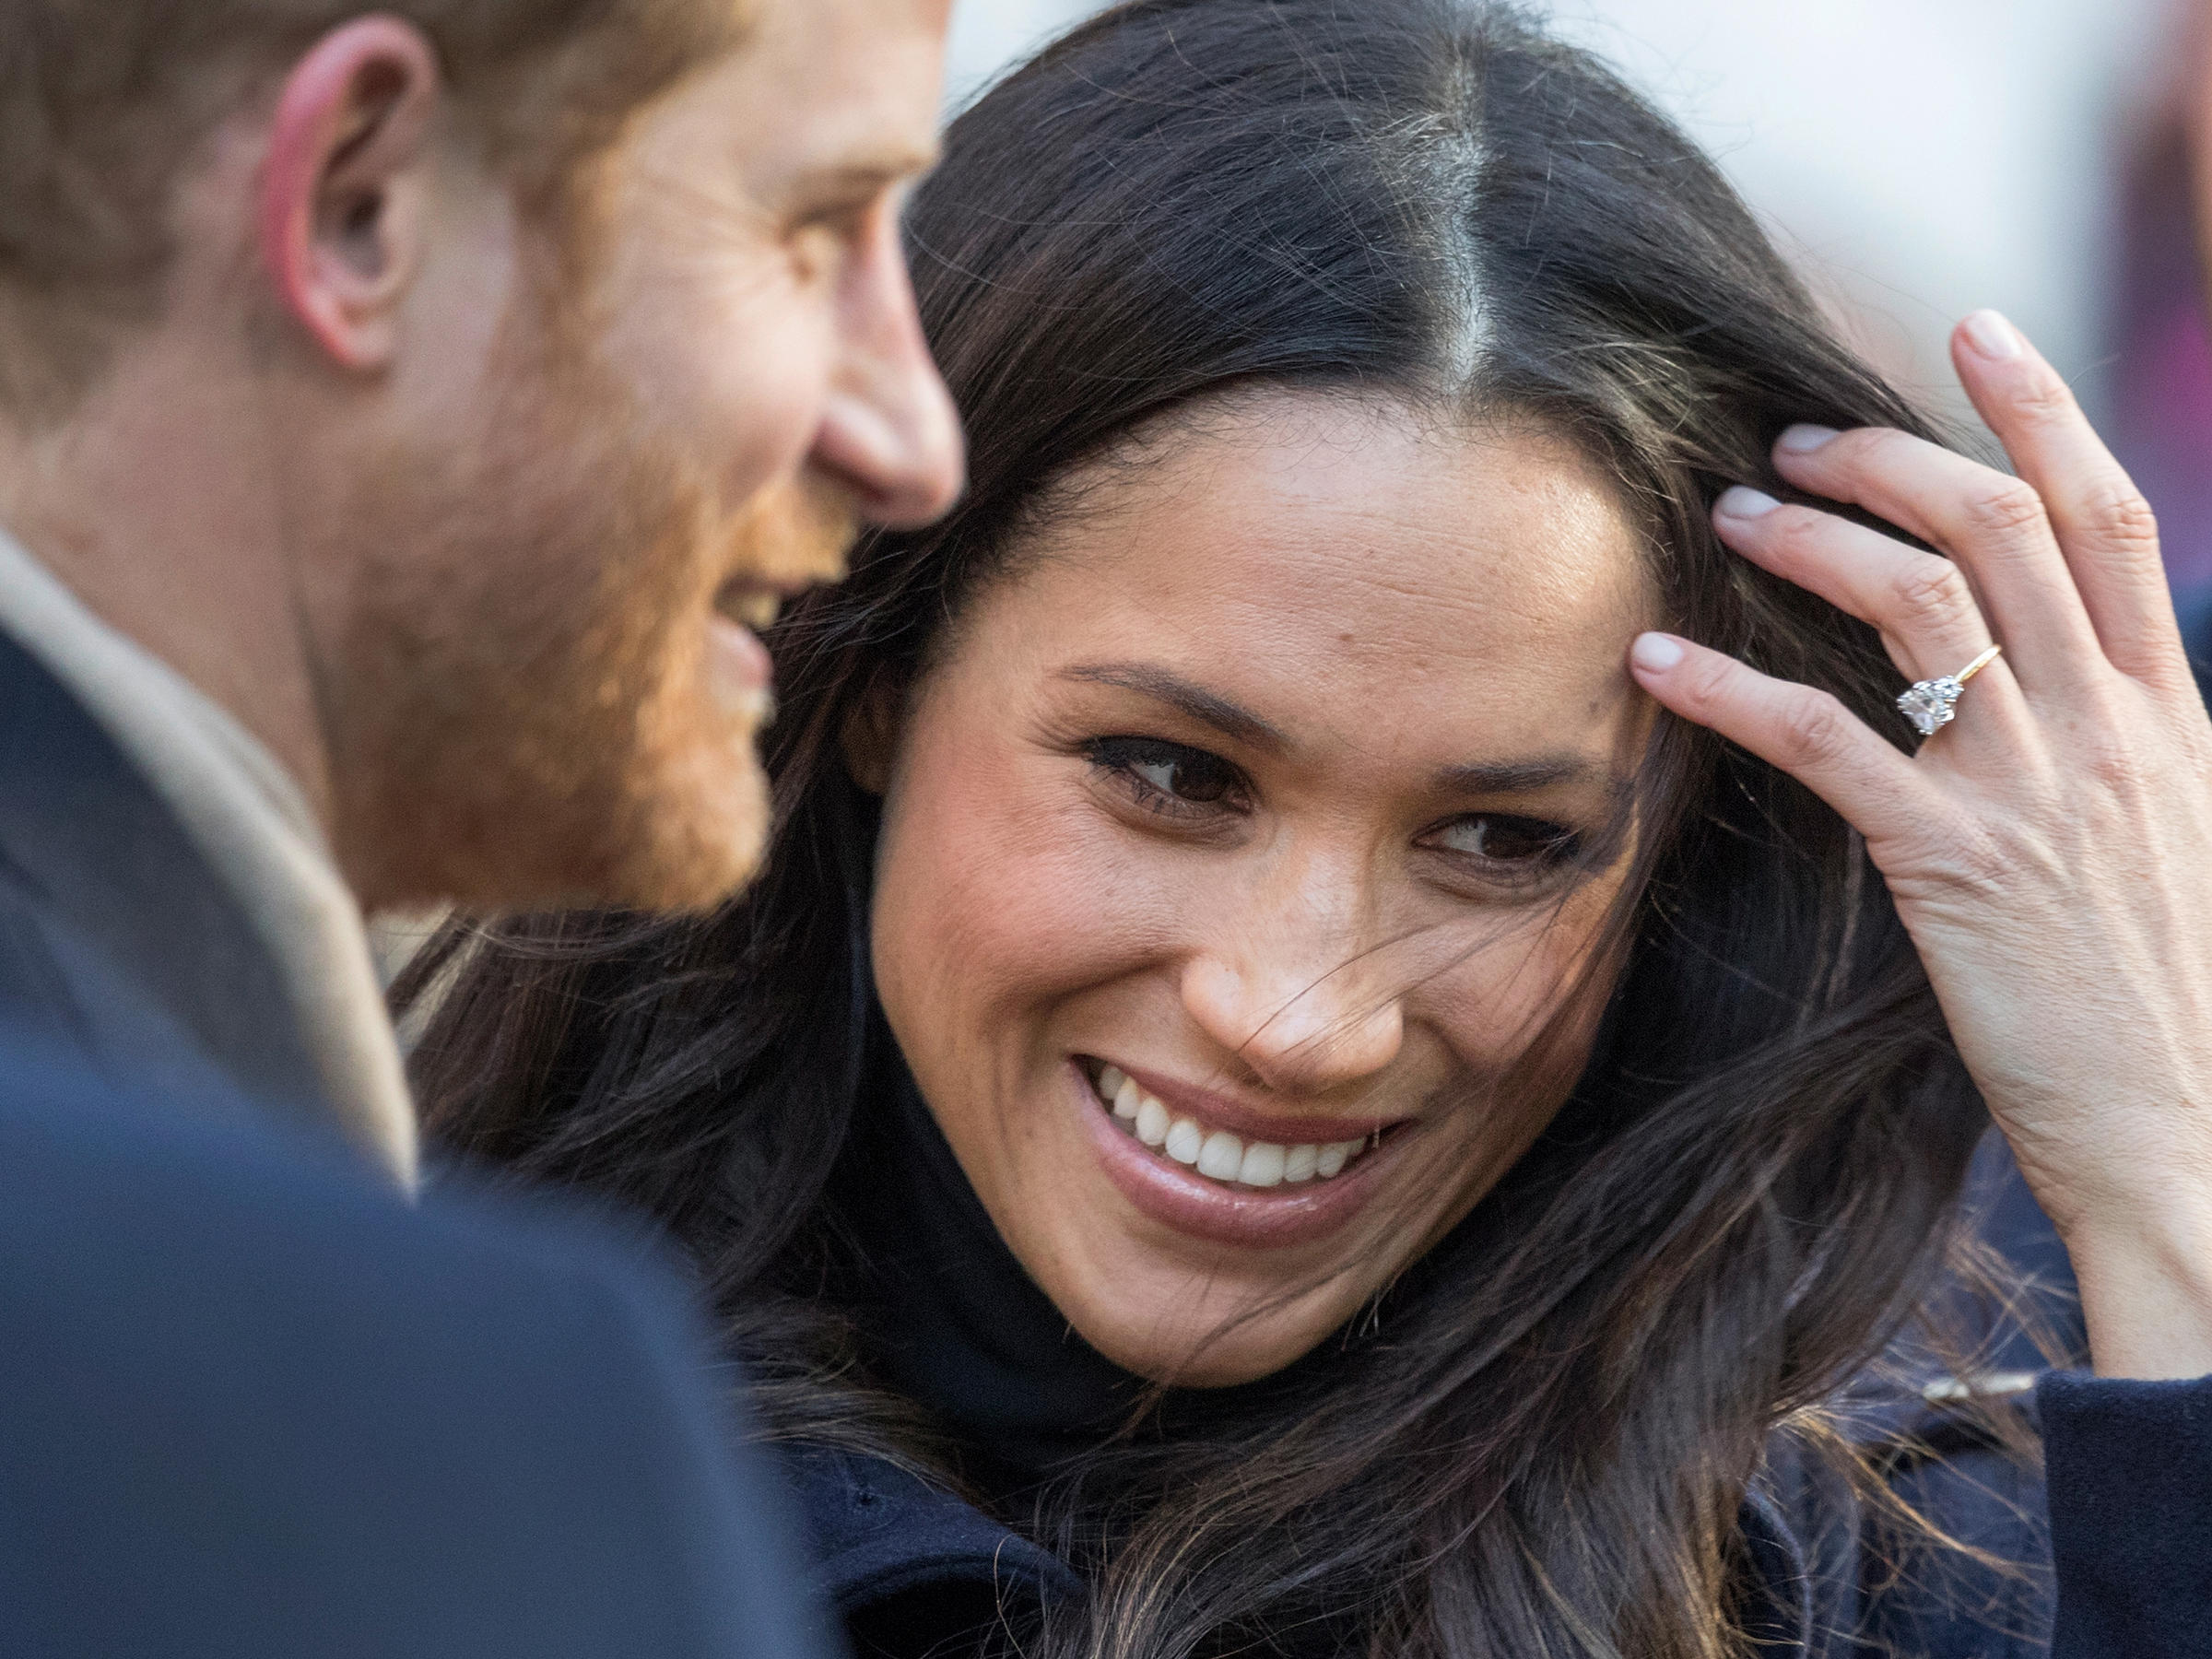 People Are Trying To Stop Meghan Markle From Getting A Royal Title